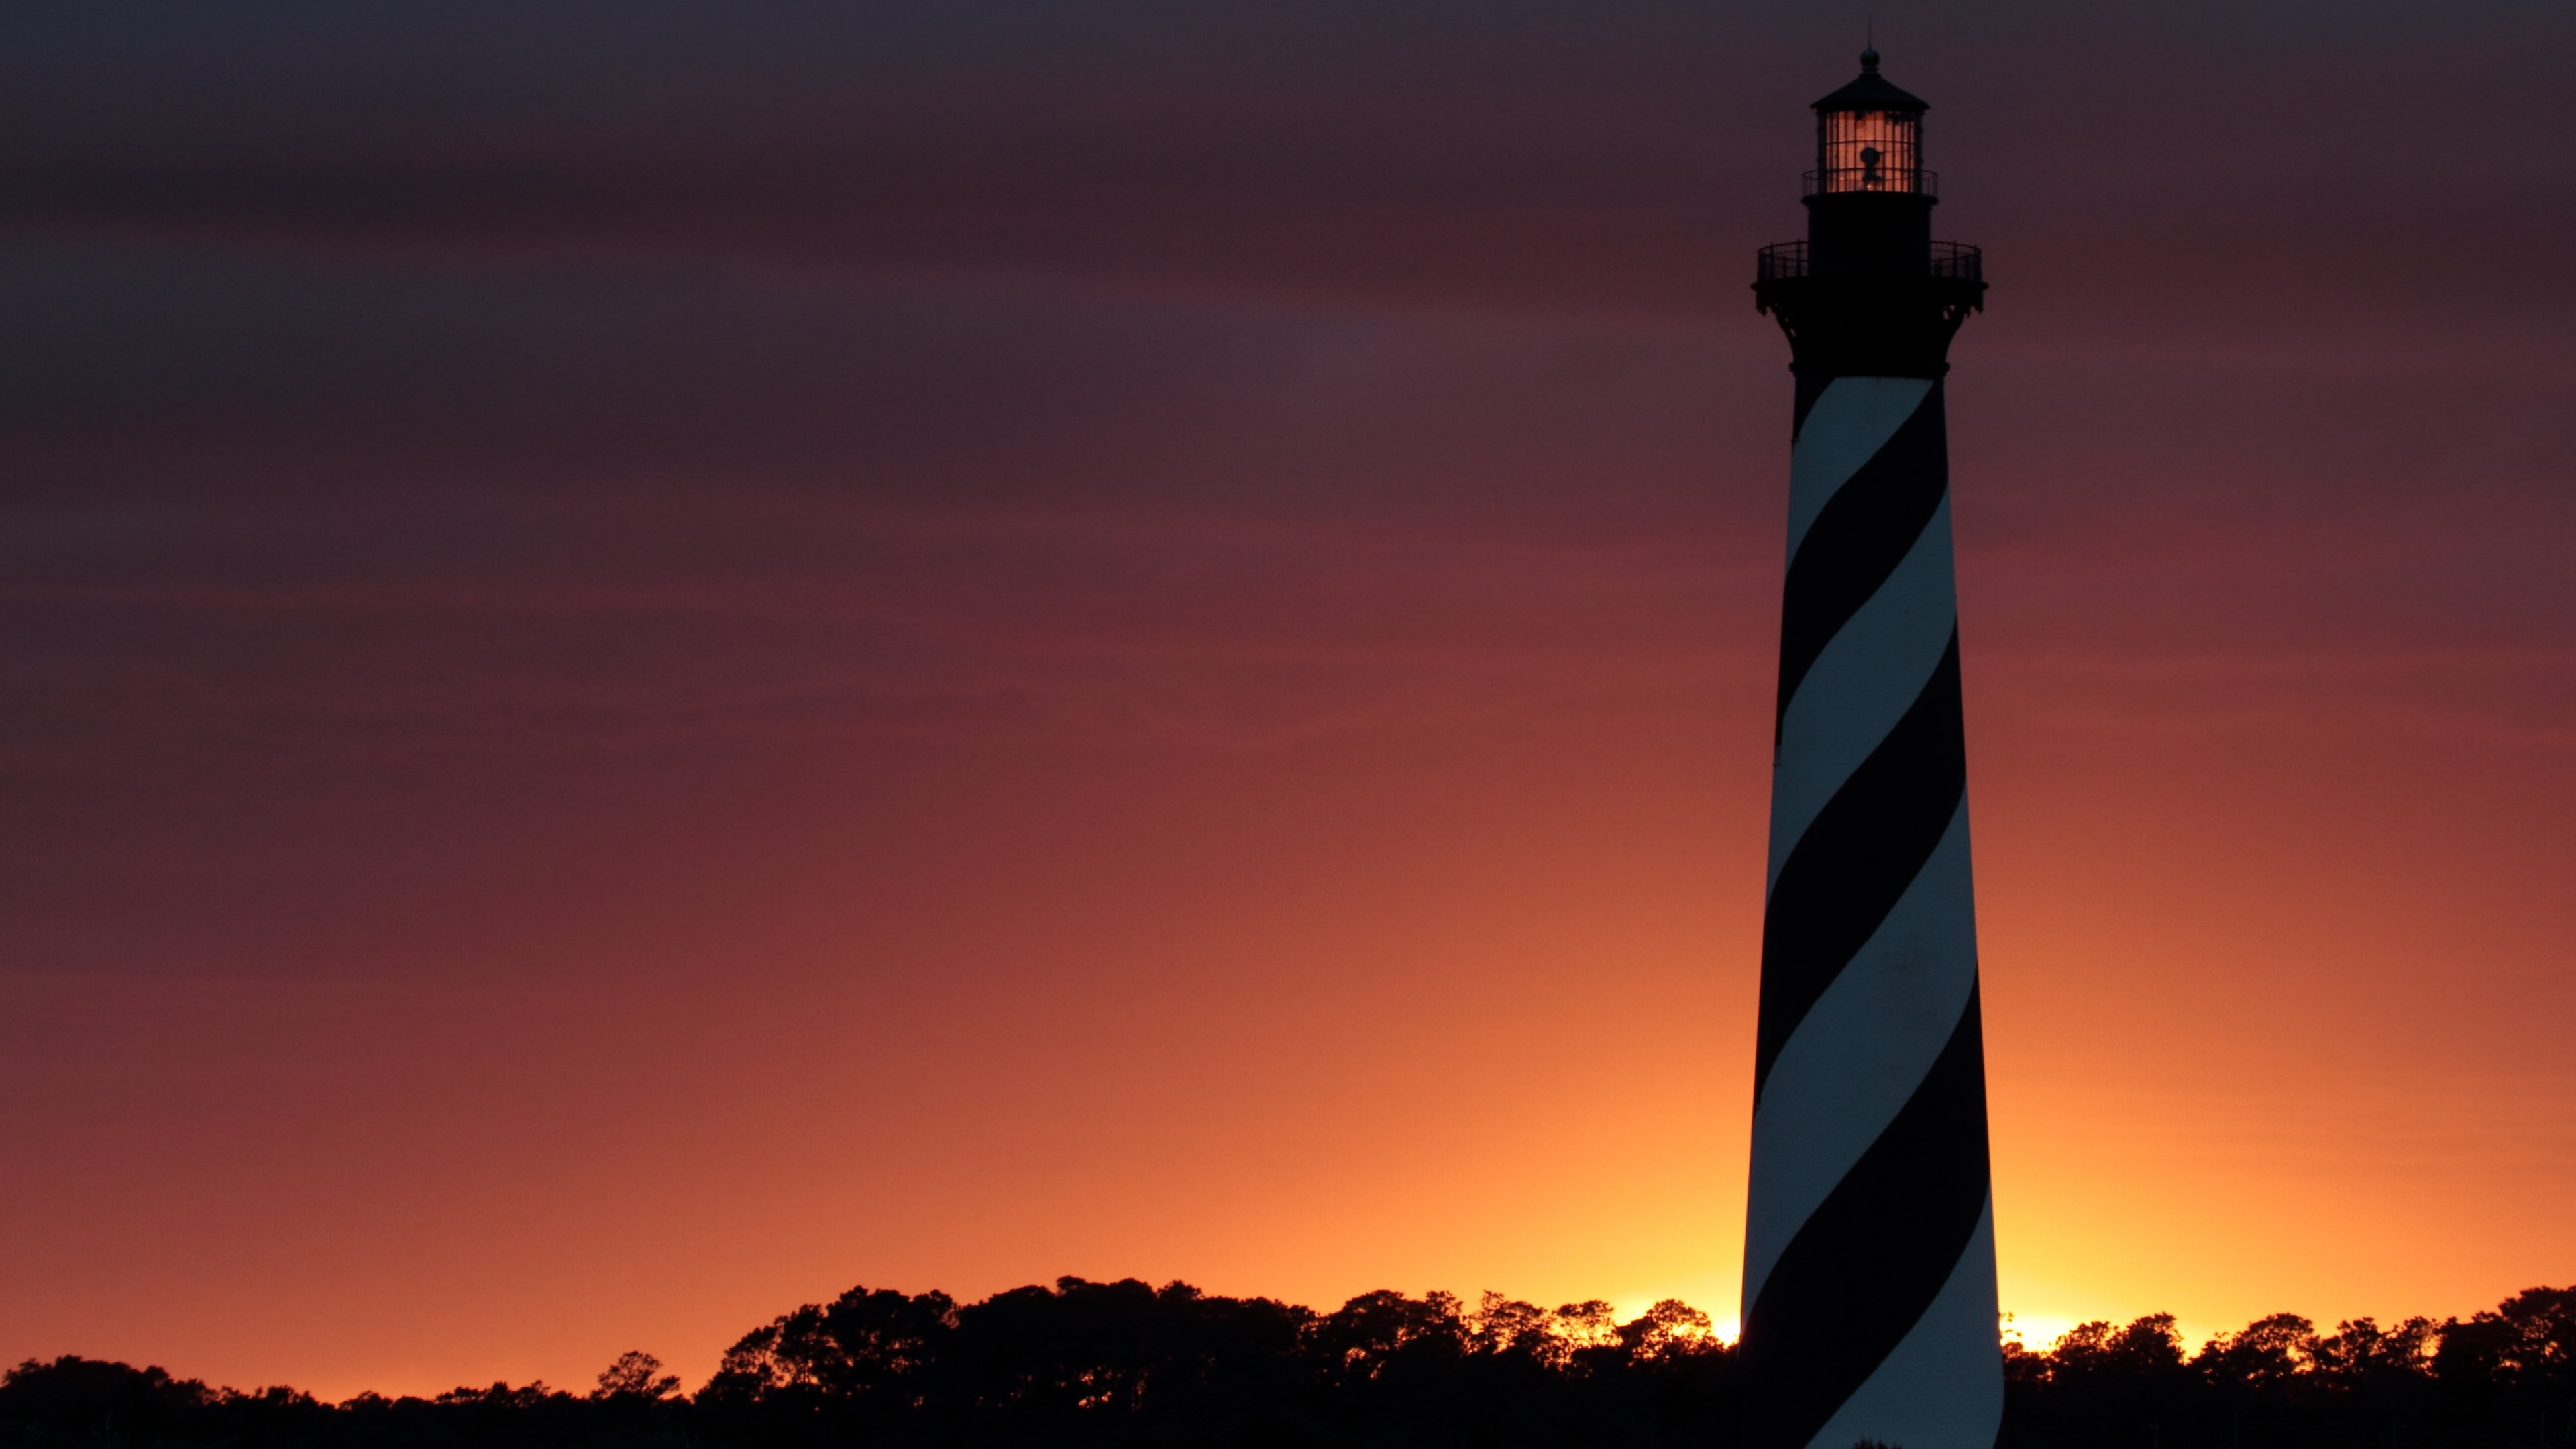 Sun setting behind striped lighthouse tower at Cape Hatteras National Seashore